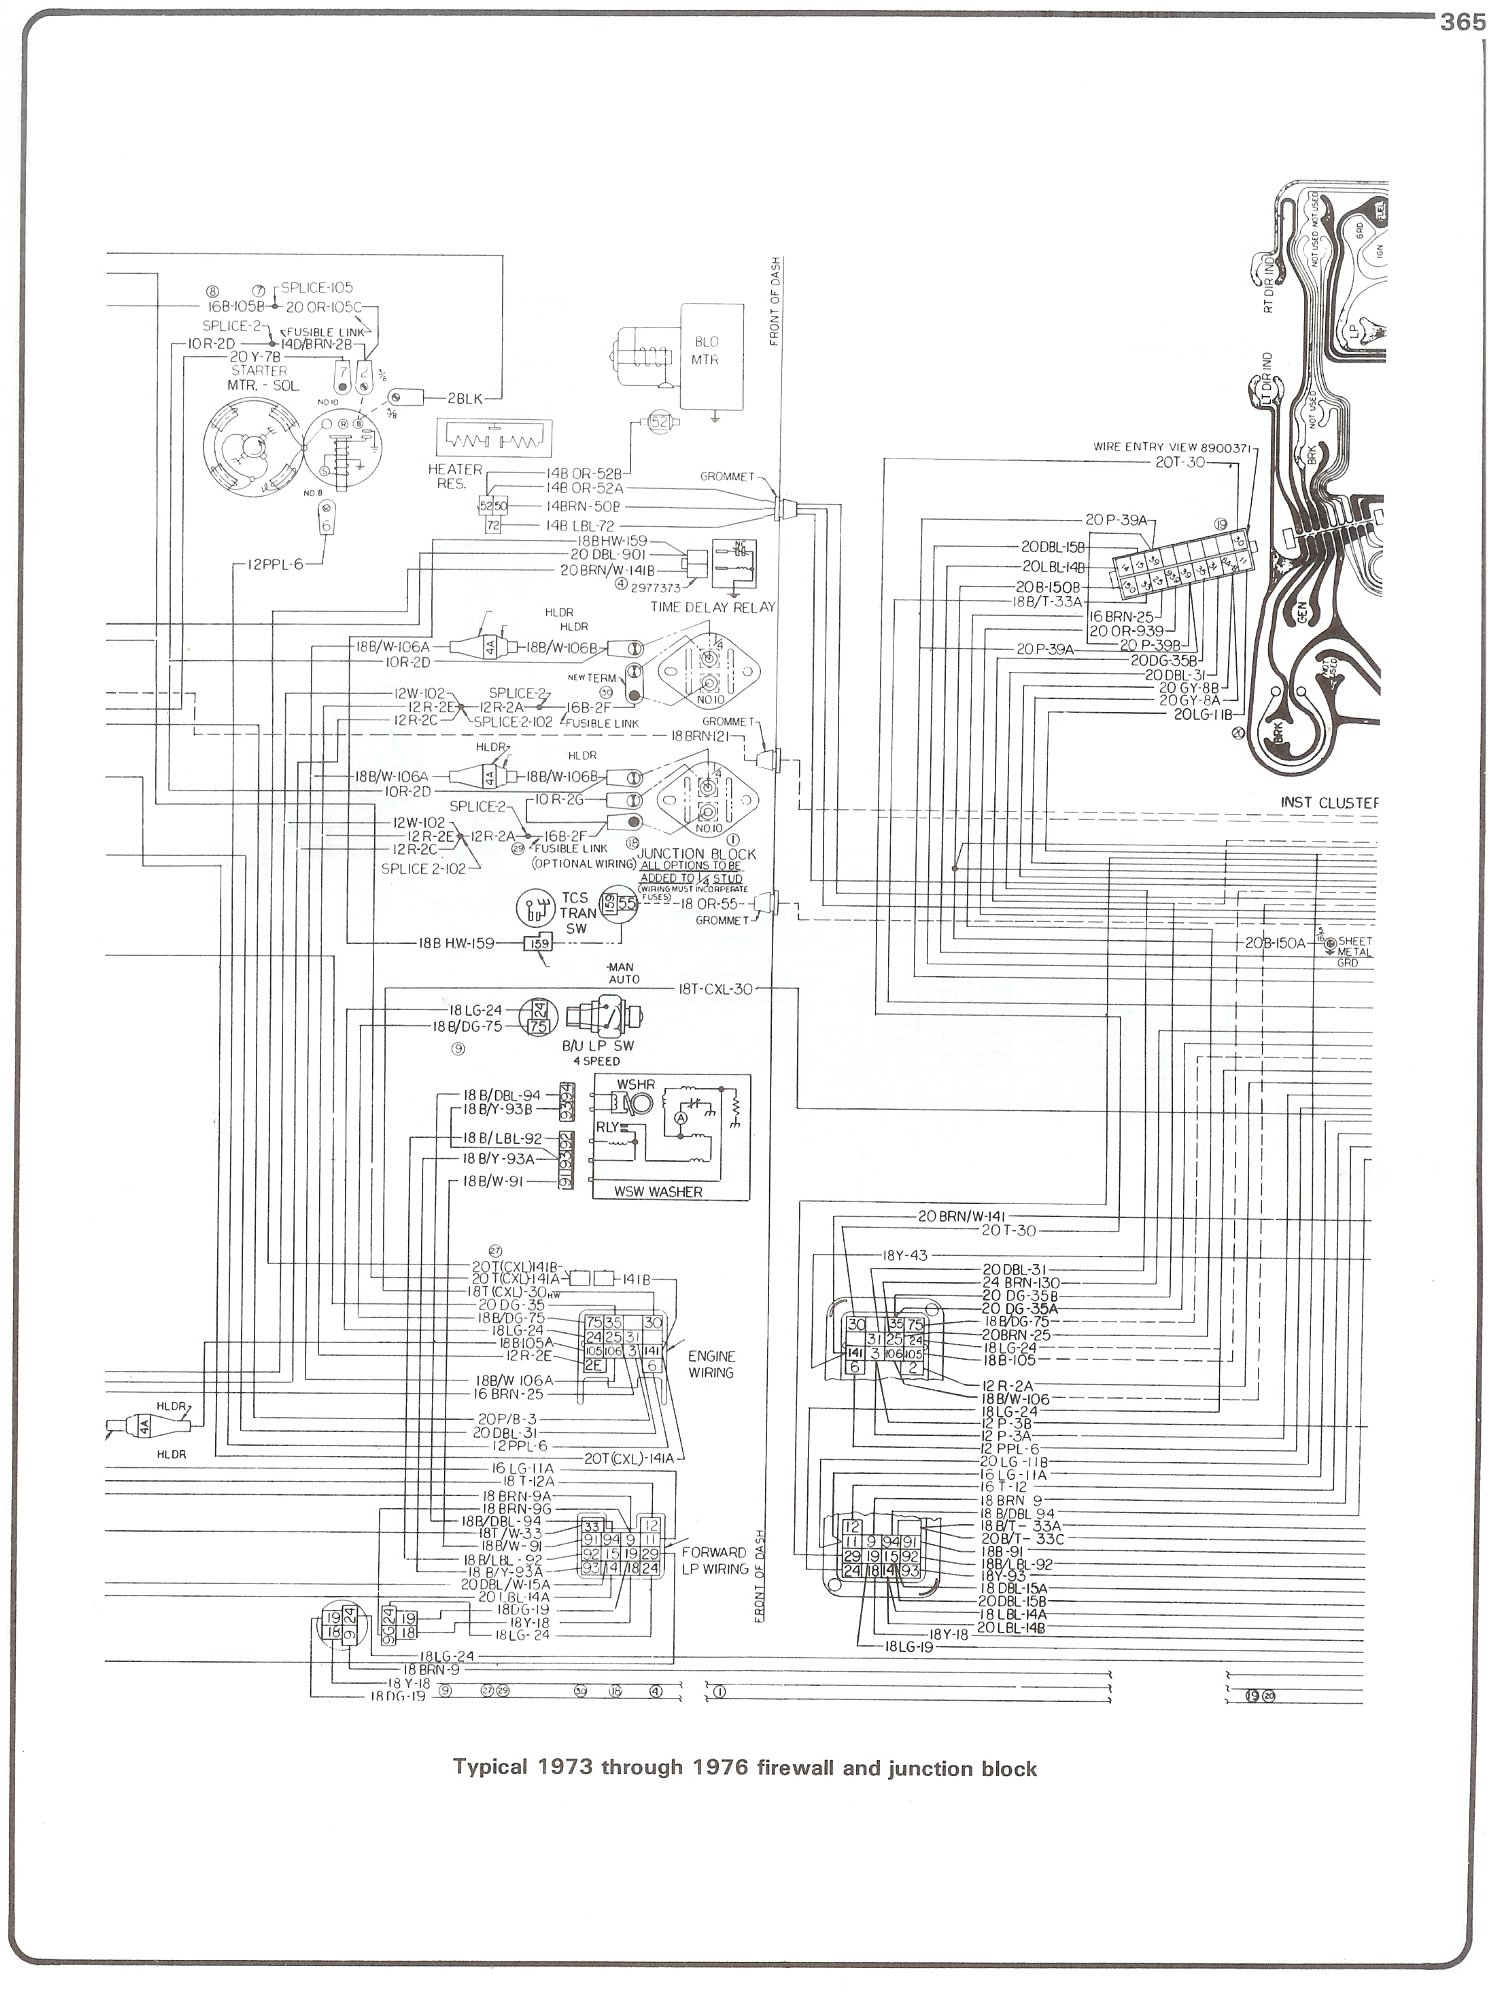 Wiring Diagram Gmc Cheyenne